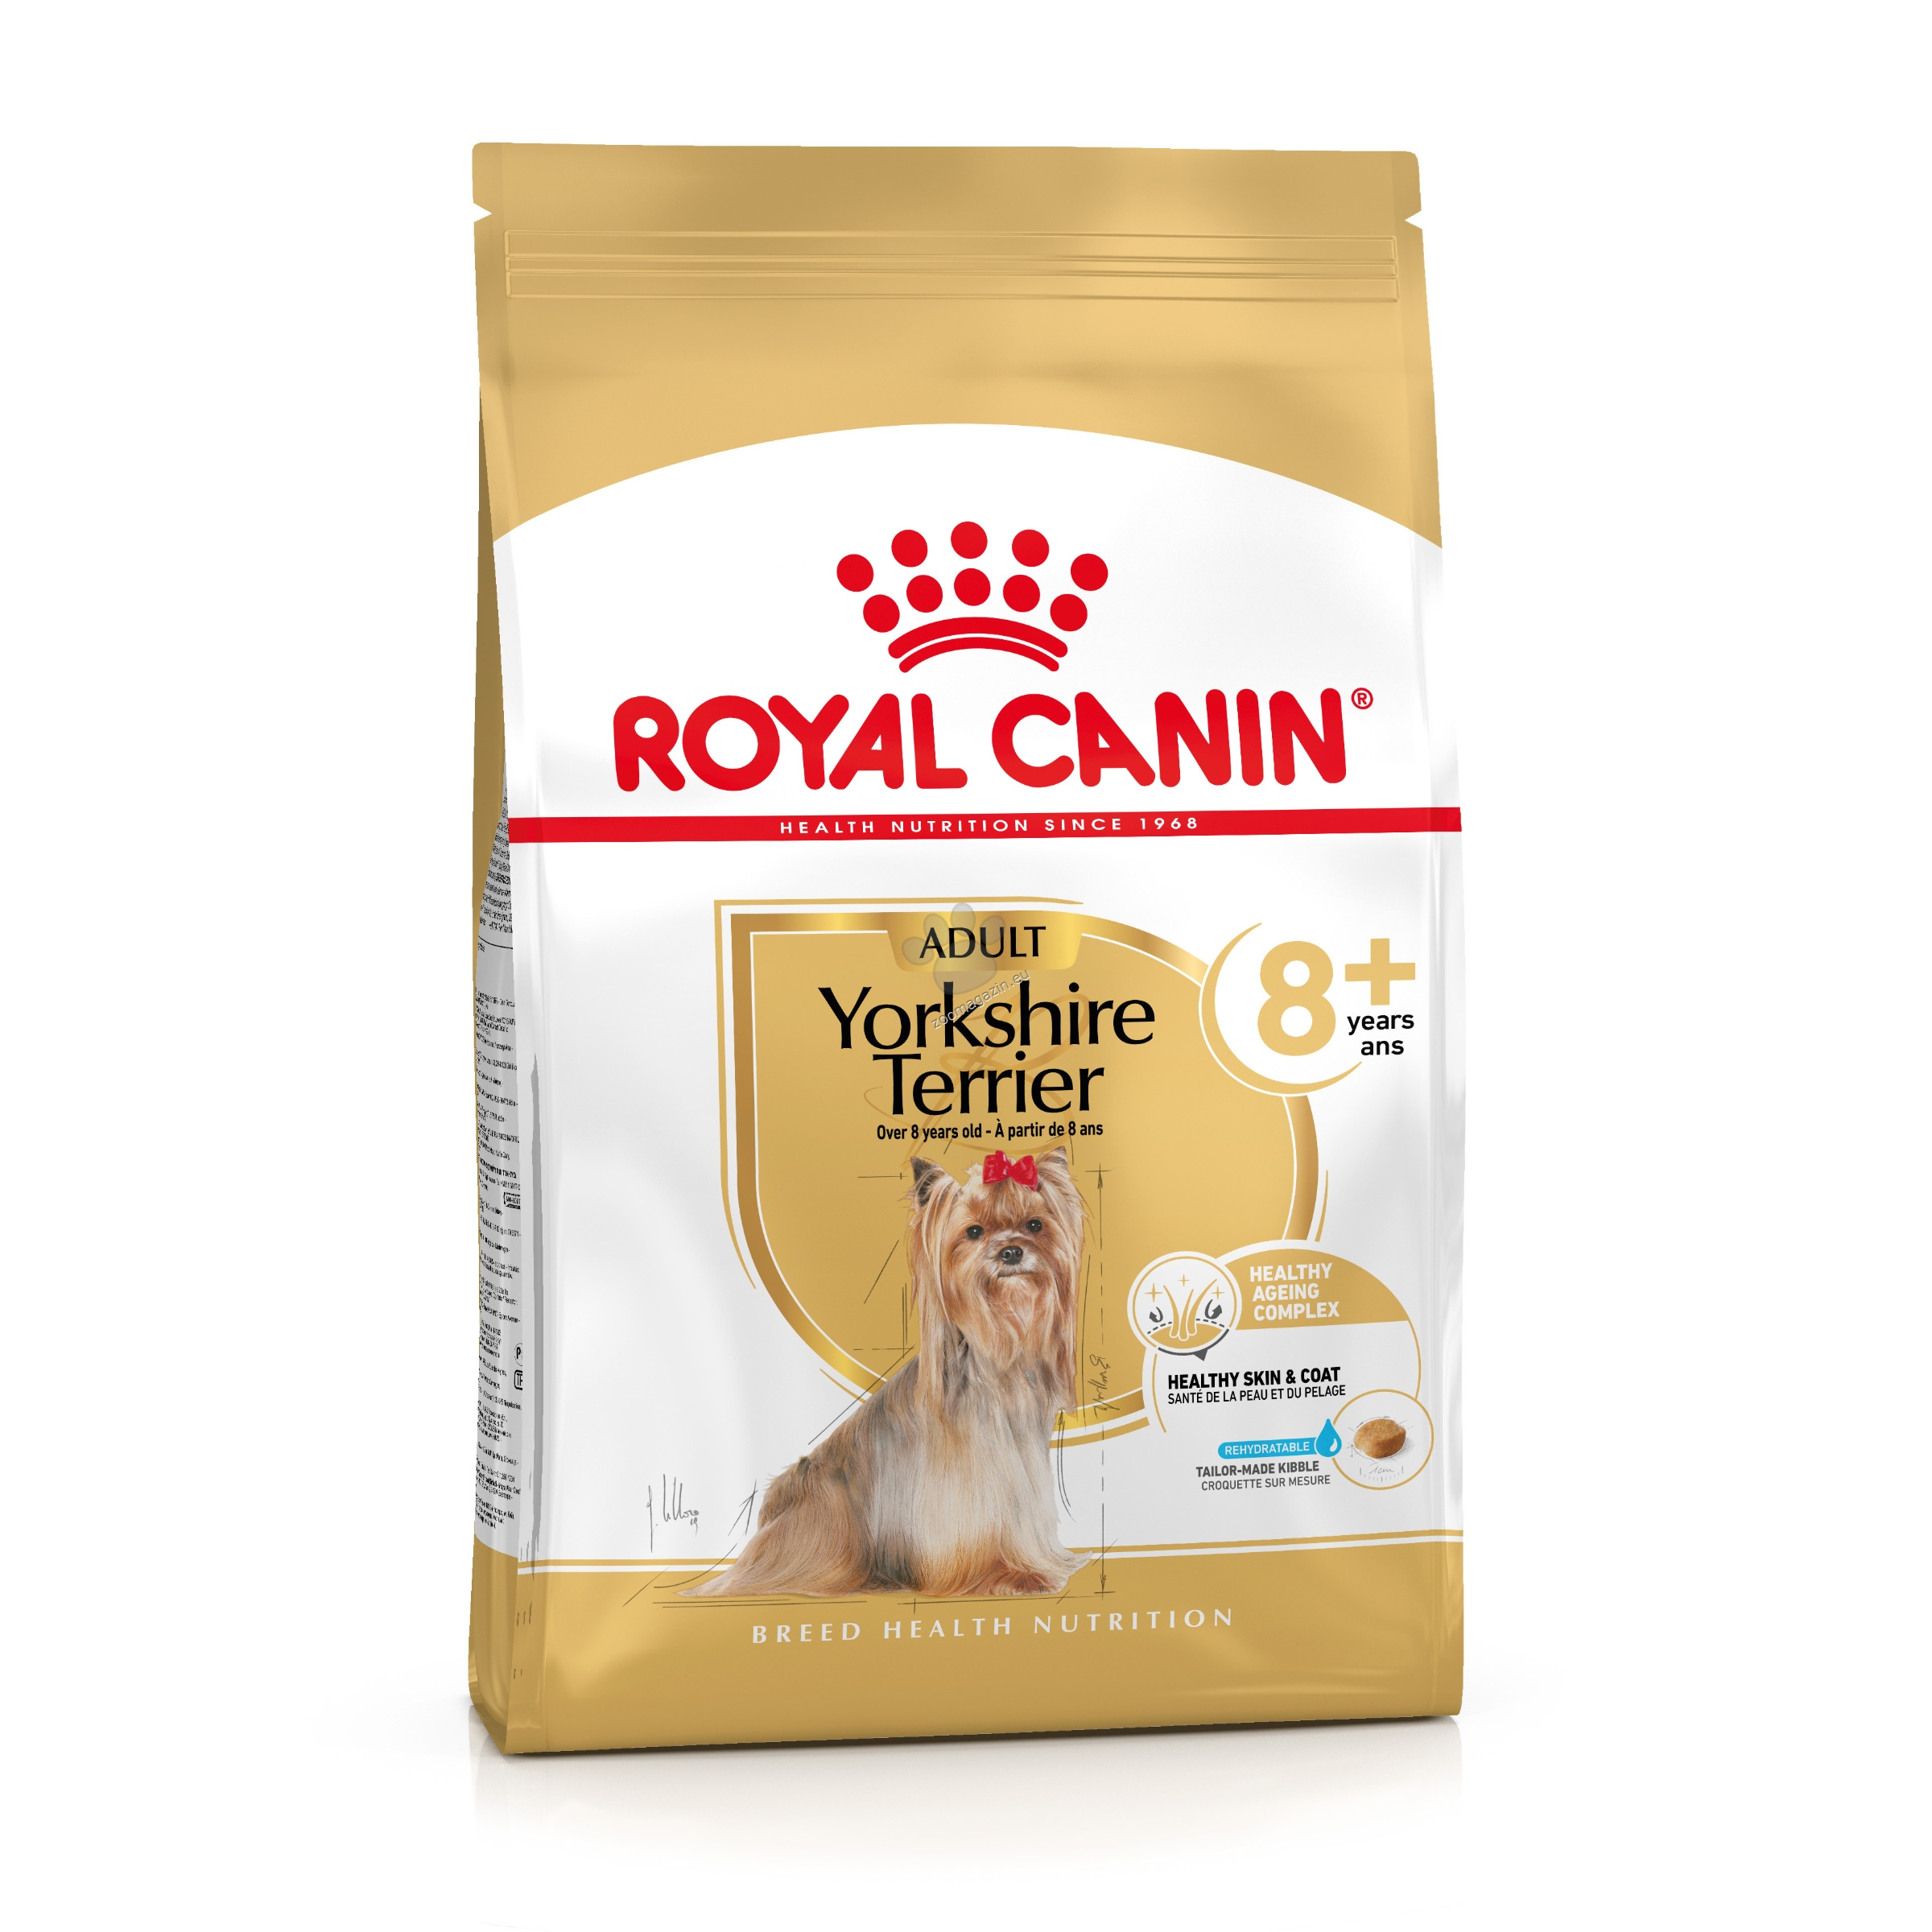 Royal Canin Yorkshire Terrier Adult 8+ - за кучета порода йоркширски териер на възраст над 8 години 1.5 кг.